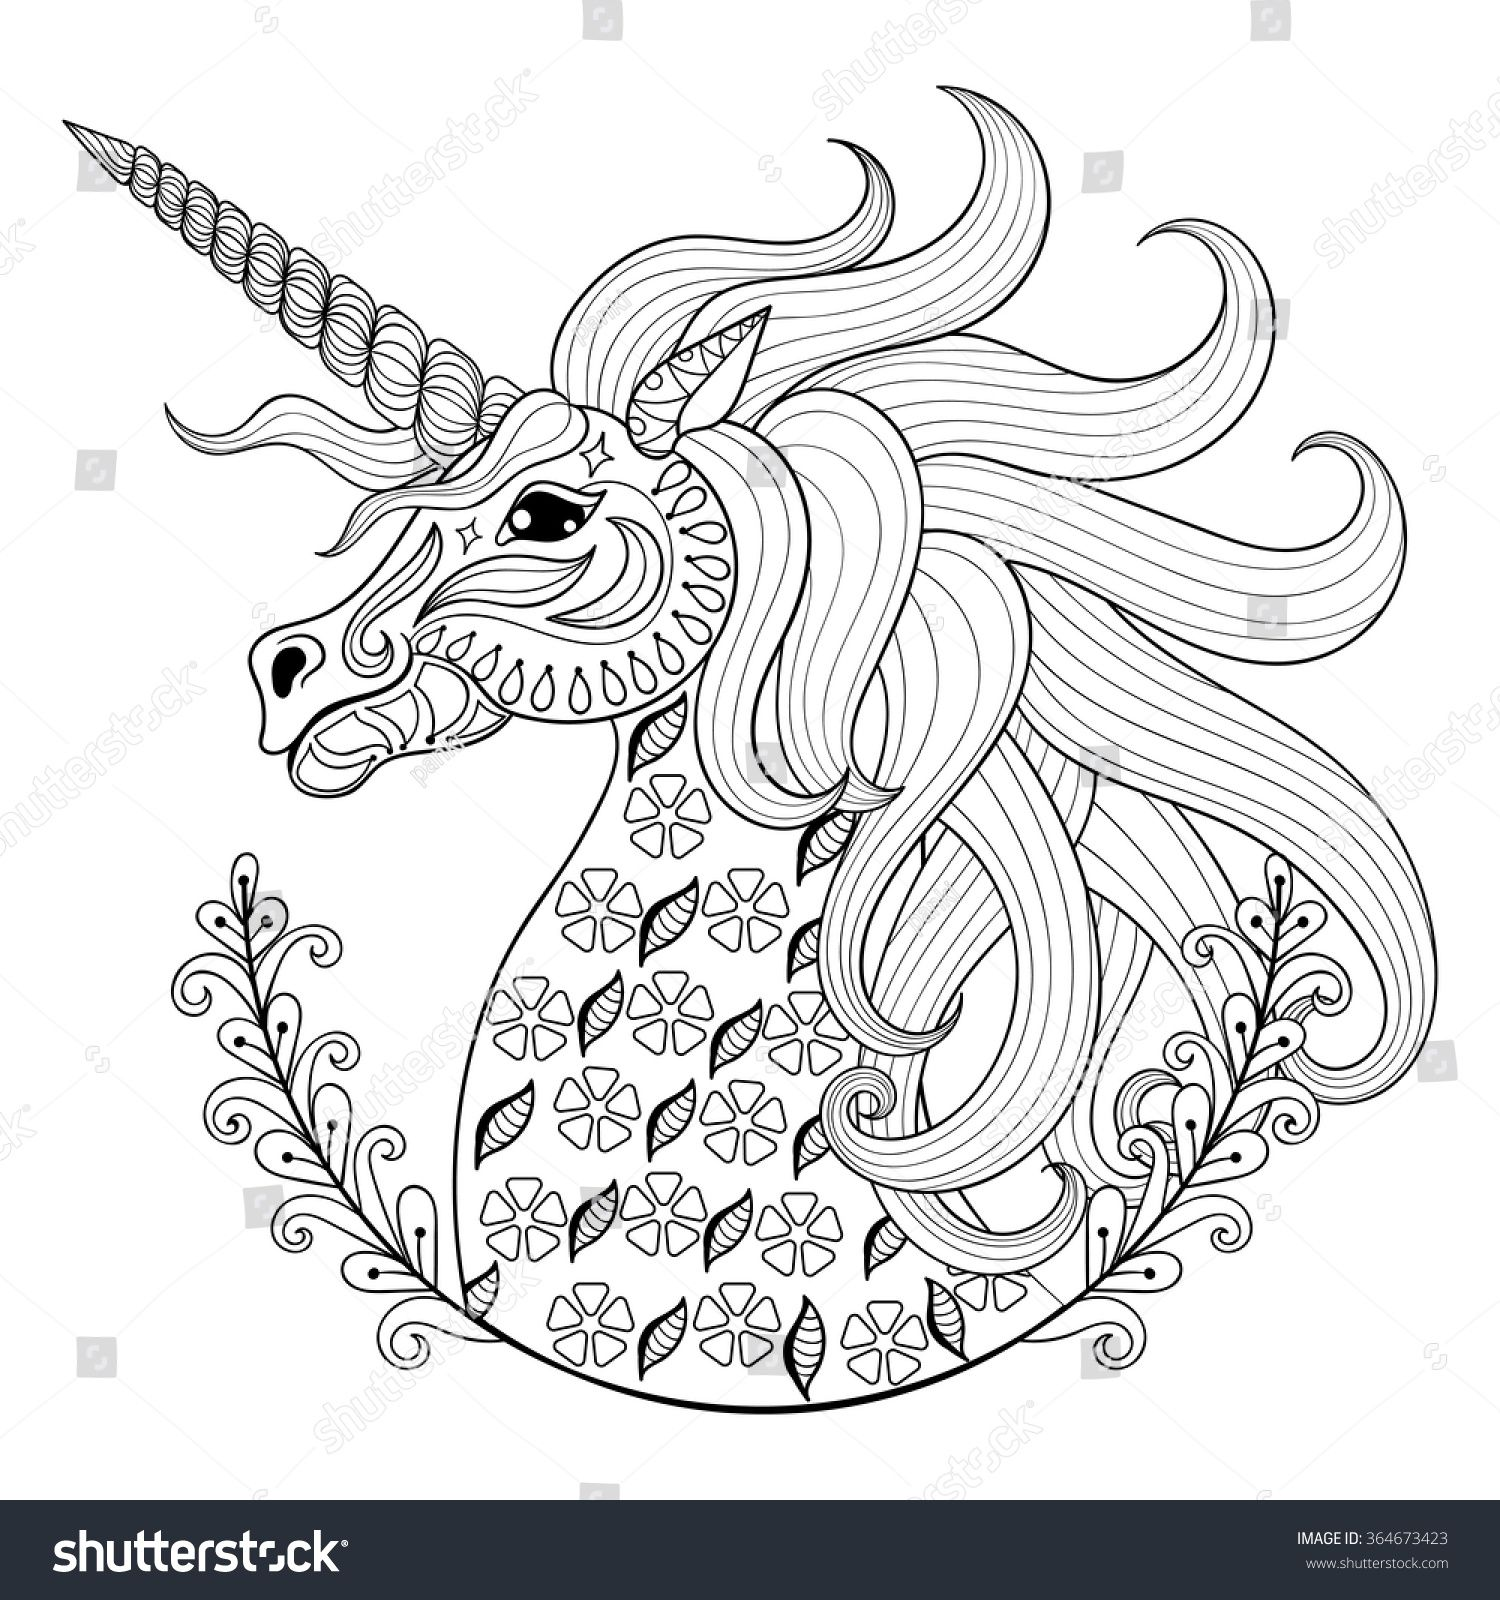 Anti stress colouring doodle and dream - Stock Vector Hand Drawing Unicorn For Adult Anti